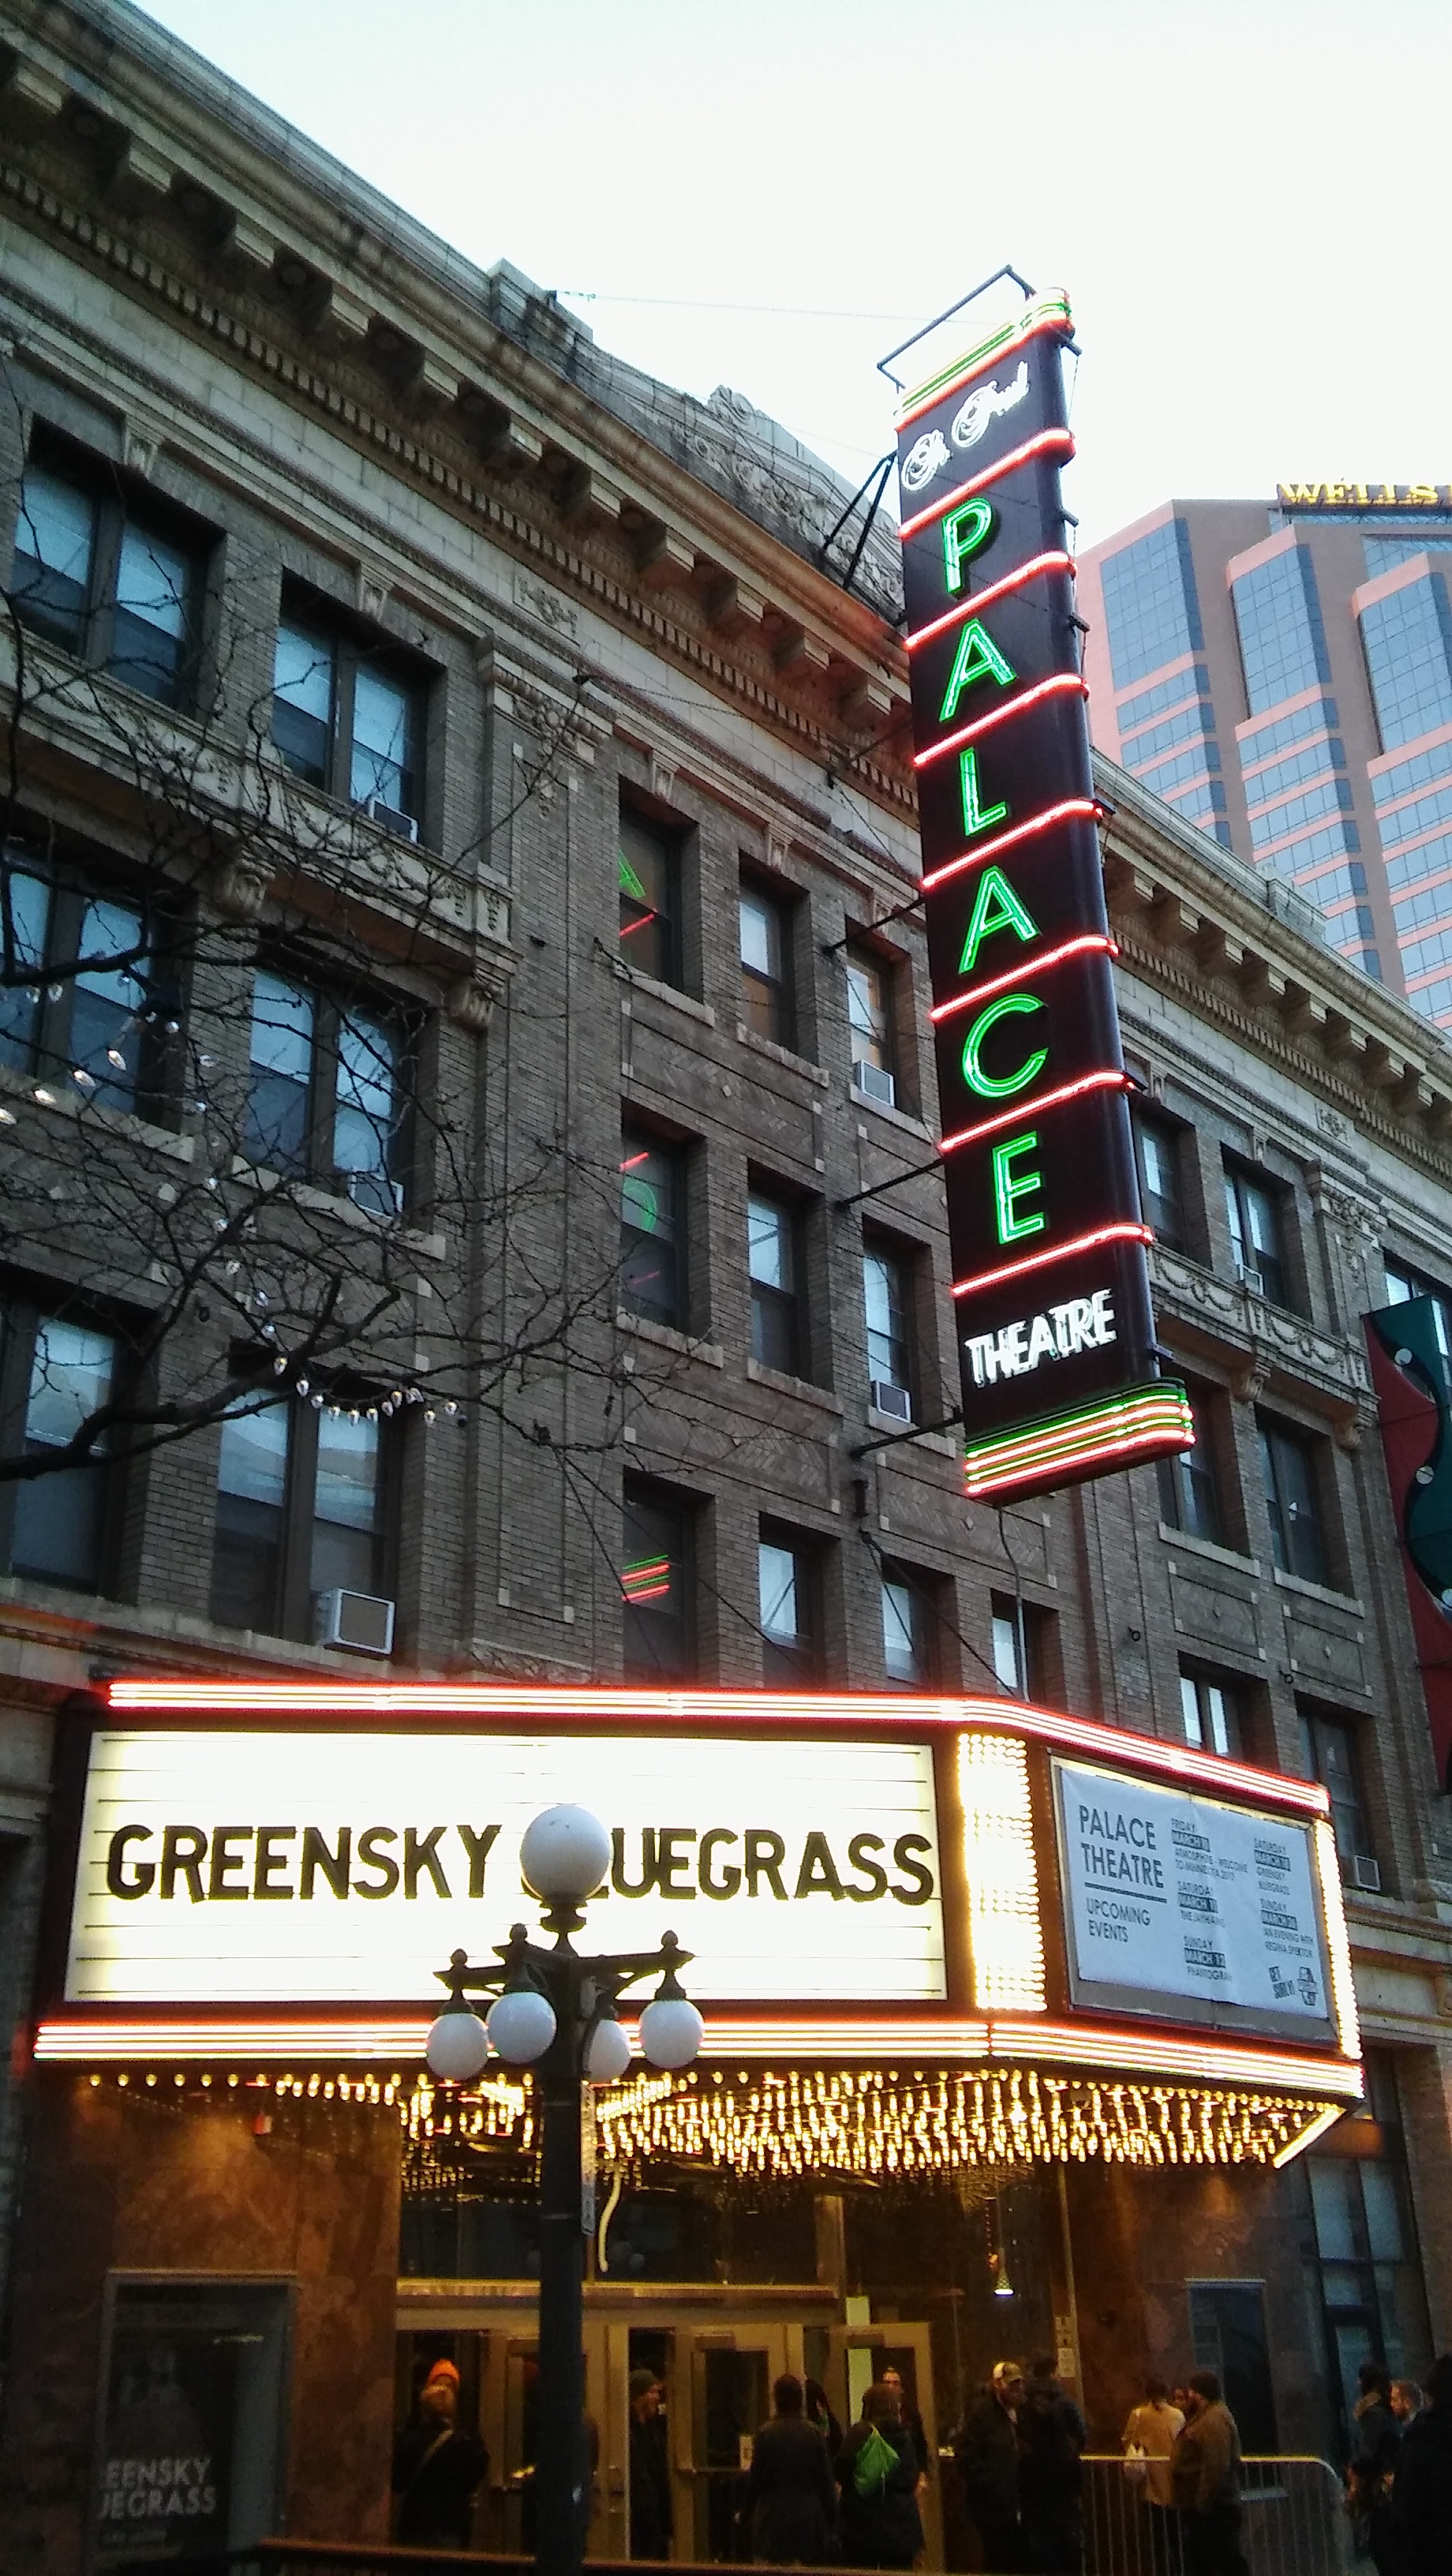 Greensky Bluegrass at The Palace Theater